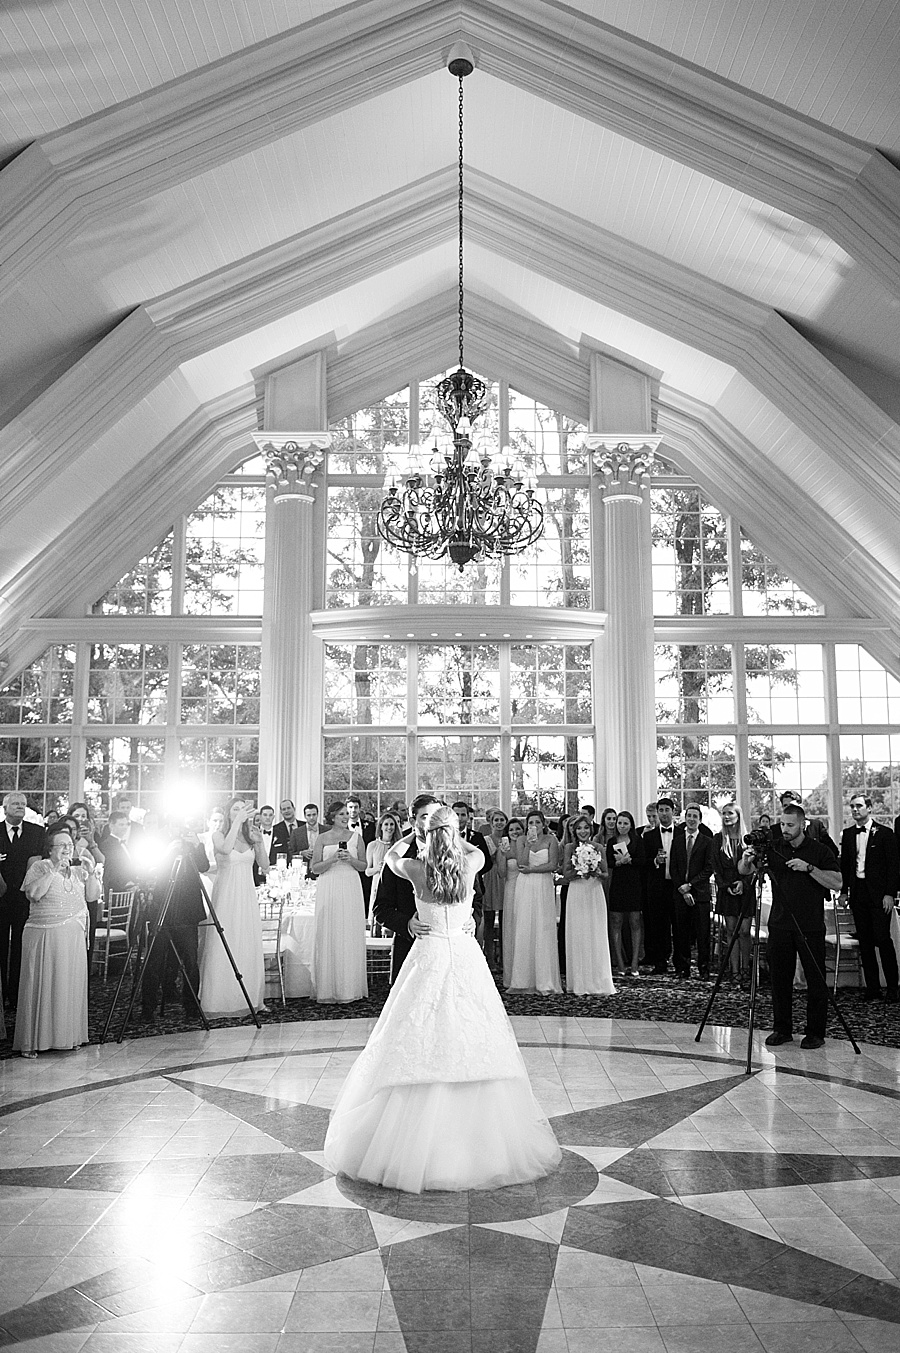 NJ_WEDDING_VENUE_ASHFORD_ESTATE_035.jpg